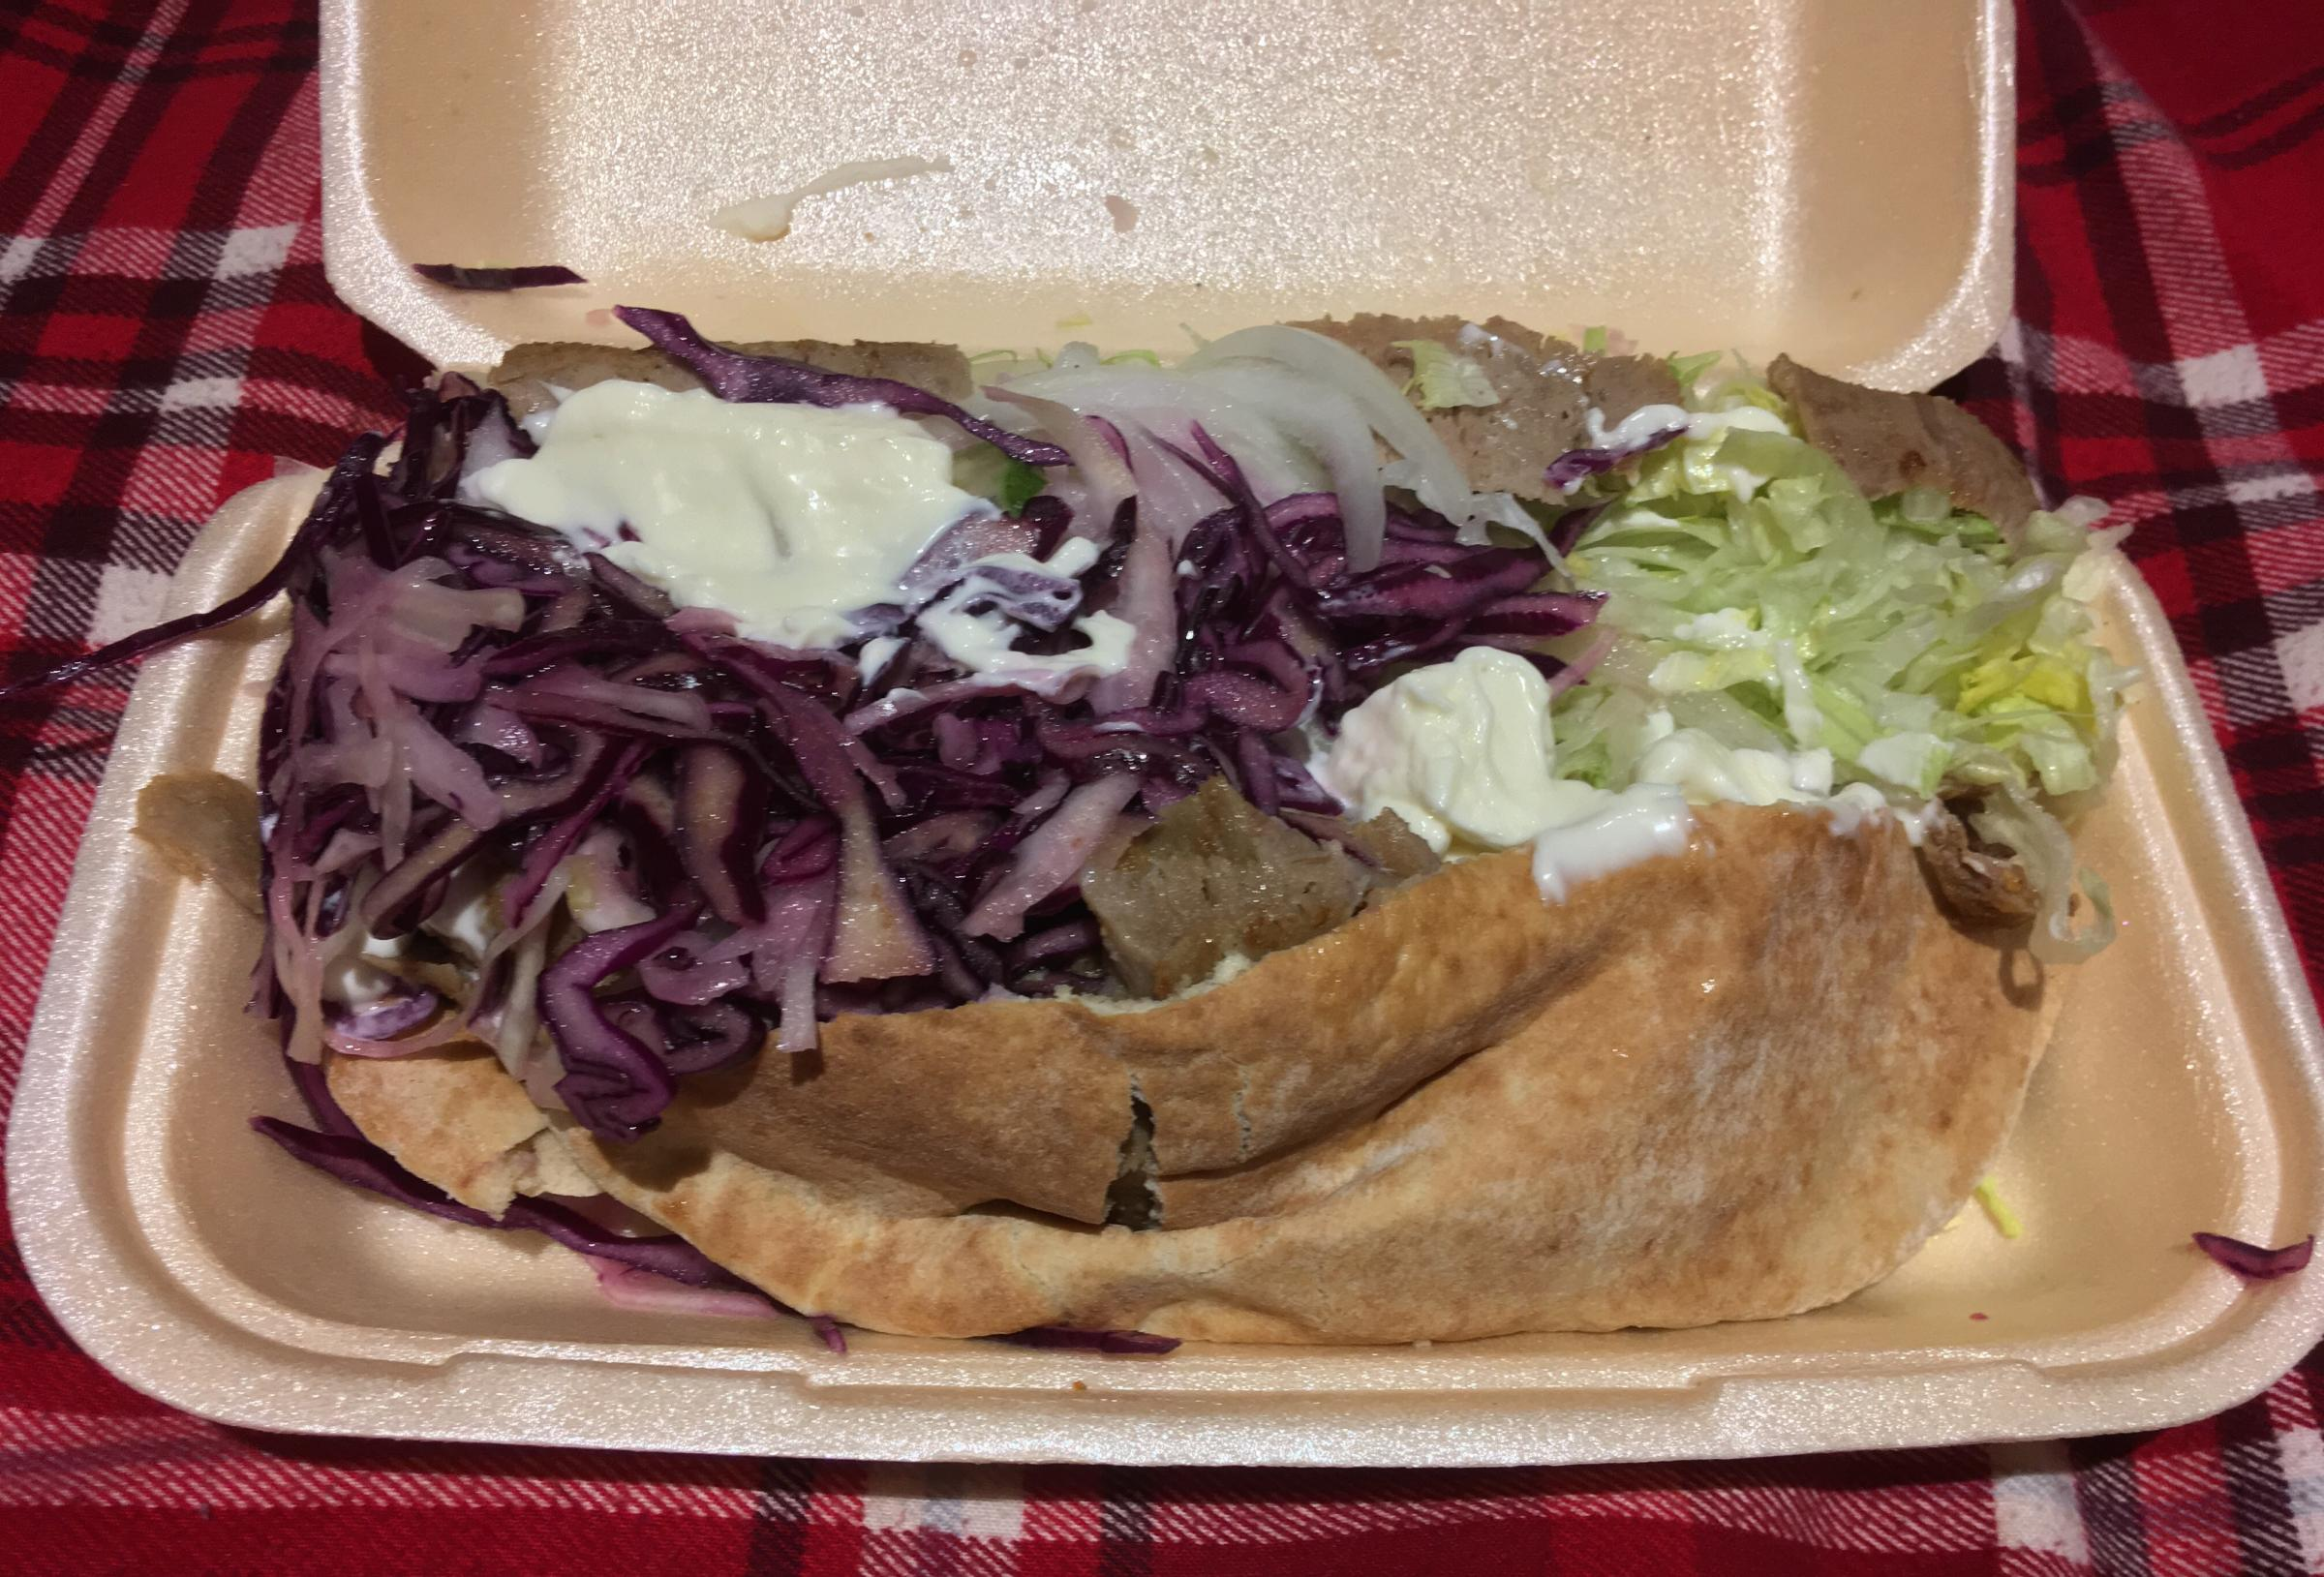 Newport's favourite takeaway food revealed to be kebabs